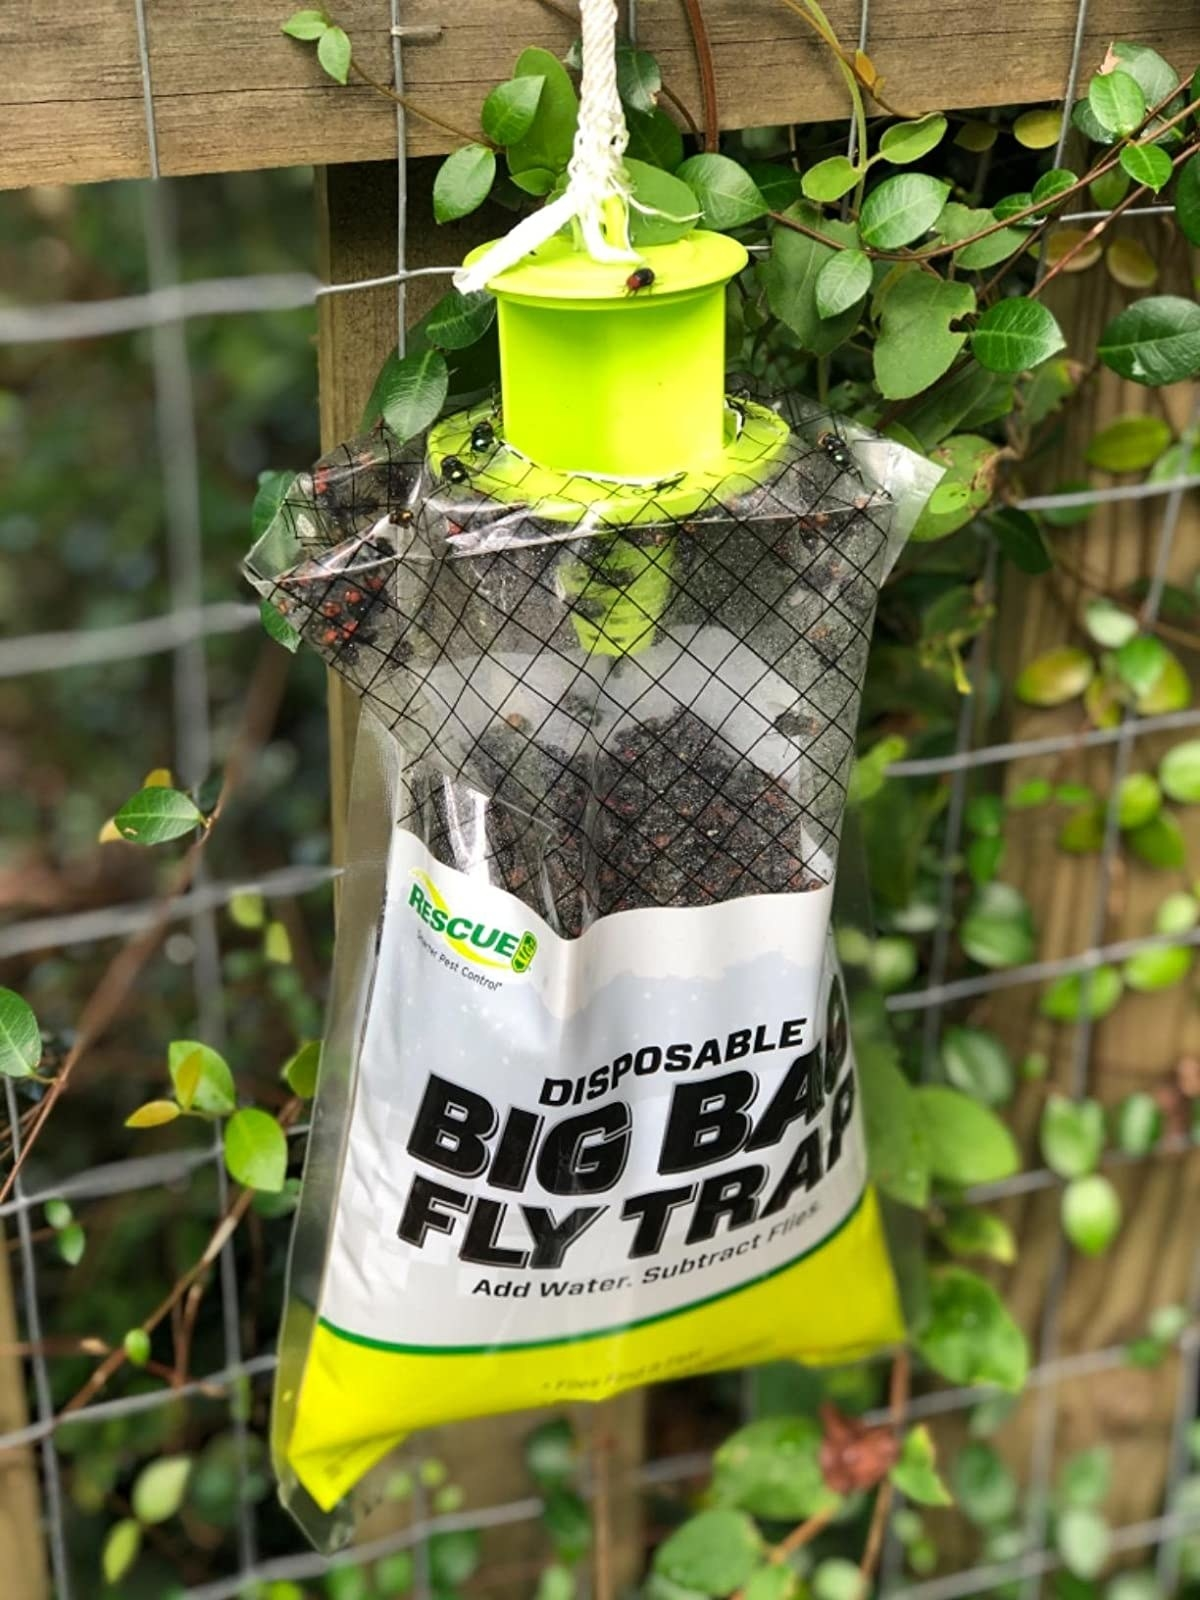 The bag hung outside and filled with tdead flies